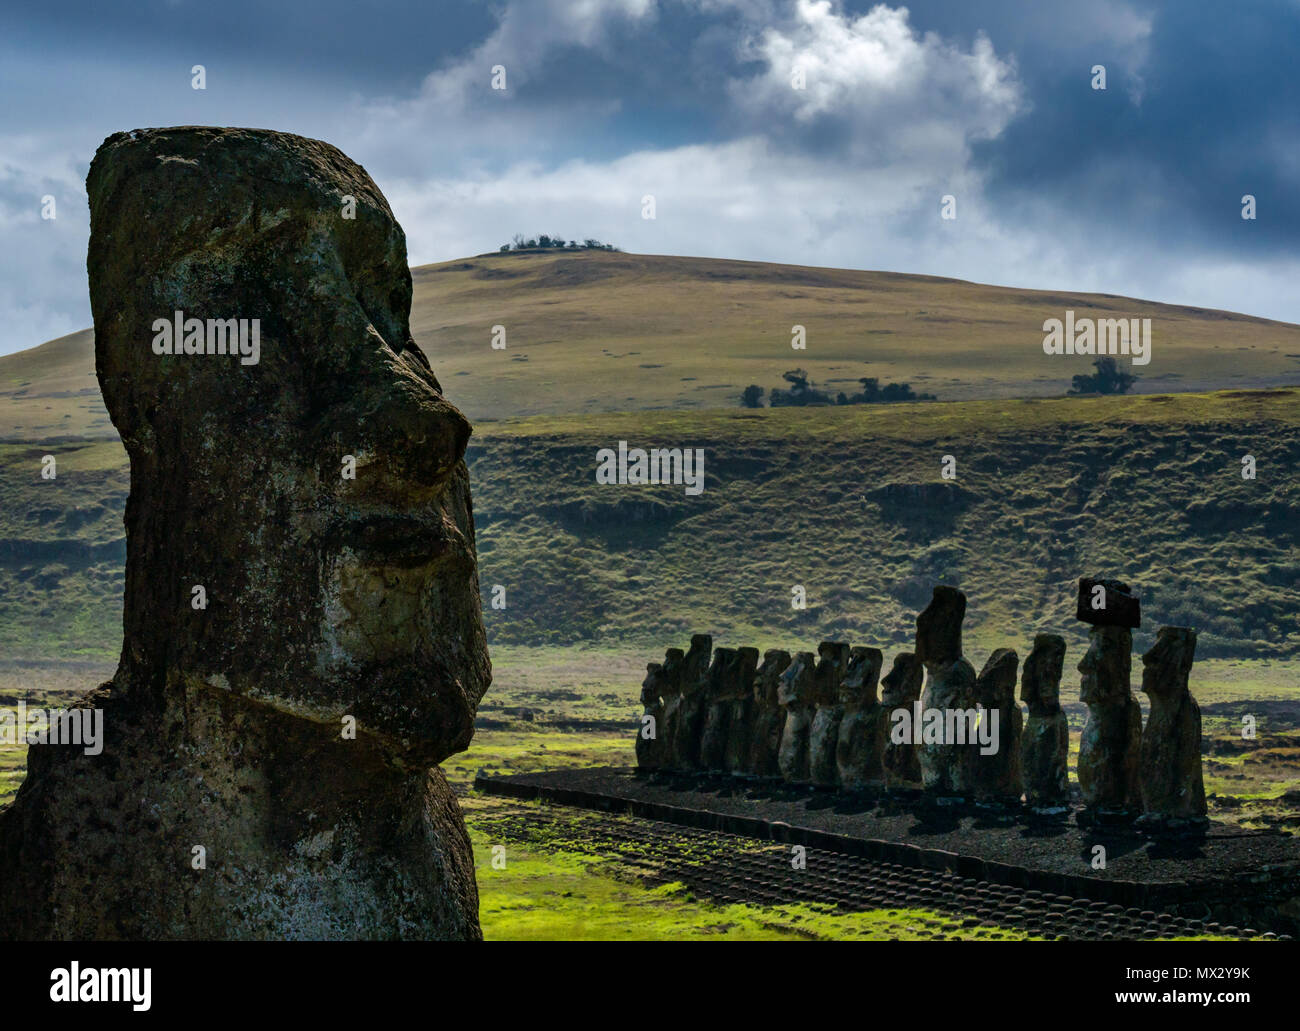 Tongariki Moai, largest reconstructed Ahu, Easter Island, Rapa Nui, Chile, with extinct volcano Poike in background - Stock Image